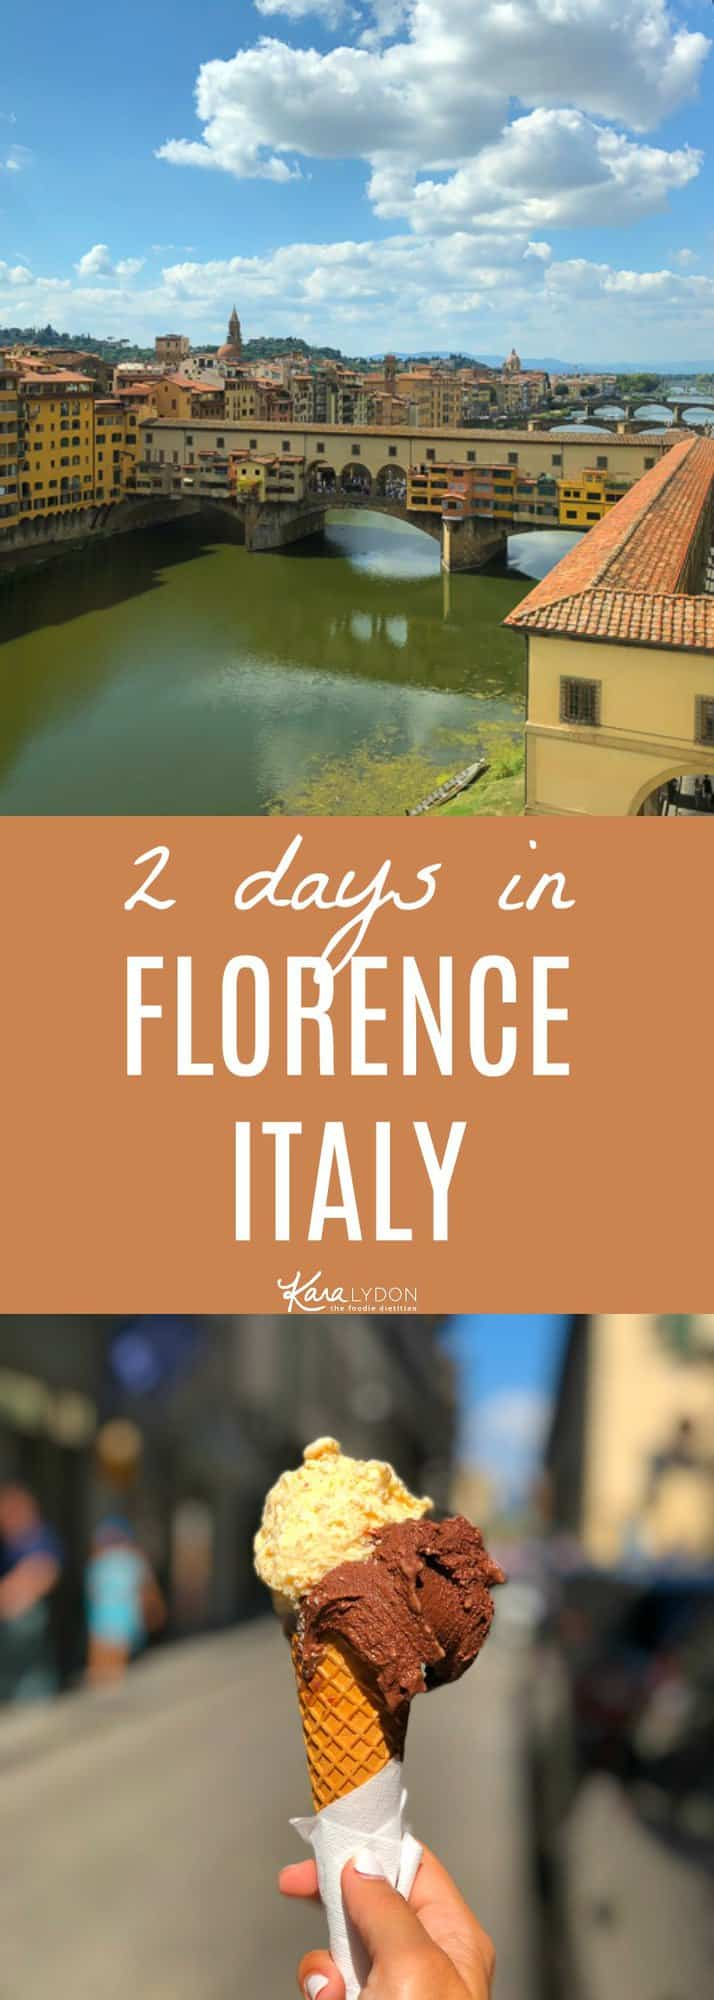 Recapping our two days in Florence, highlighting what to see and where to eat! #travel #florence #italy